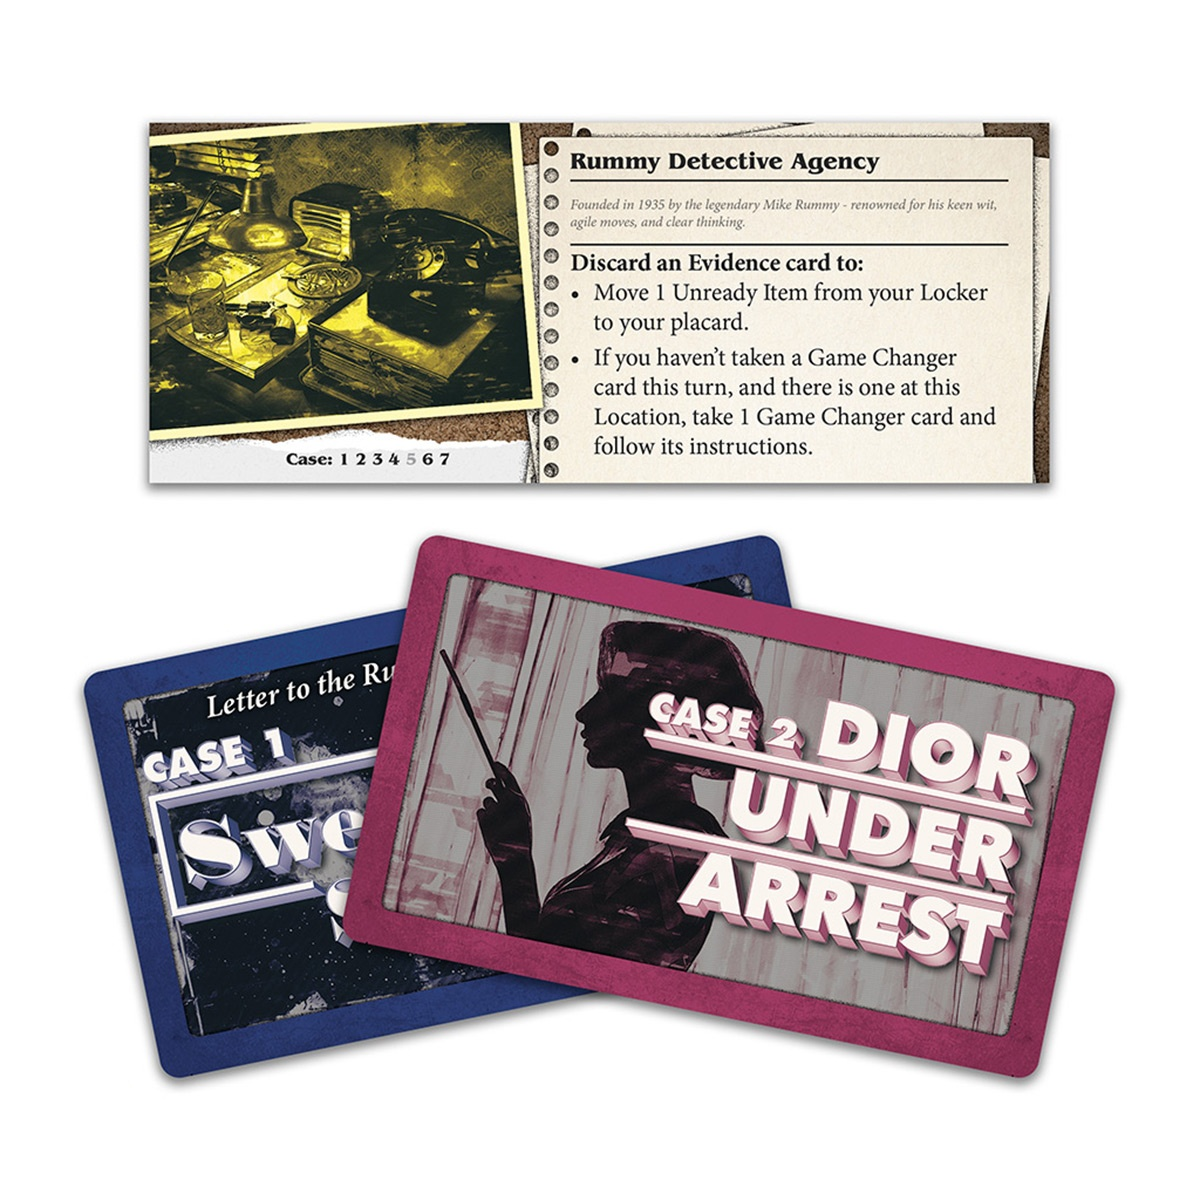 Detective-Rummy-Image-Two